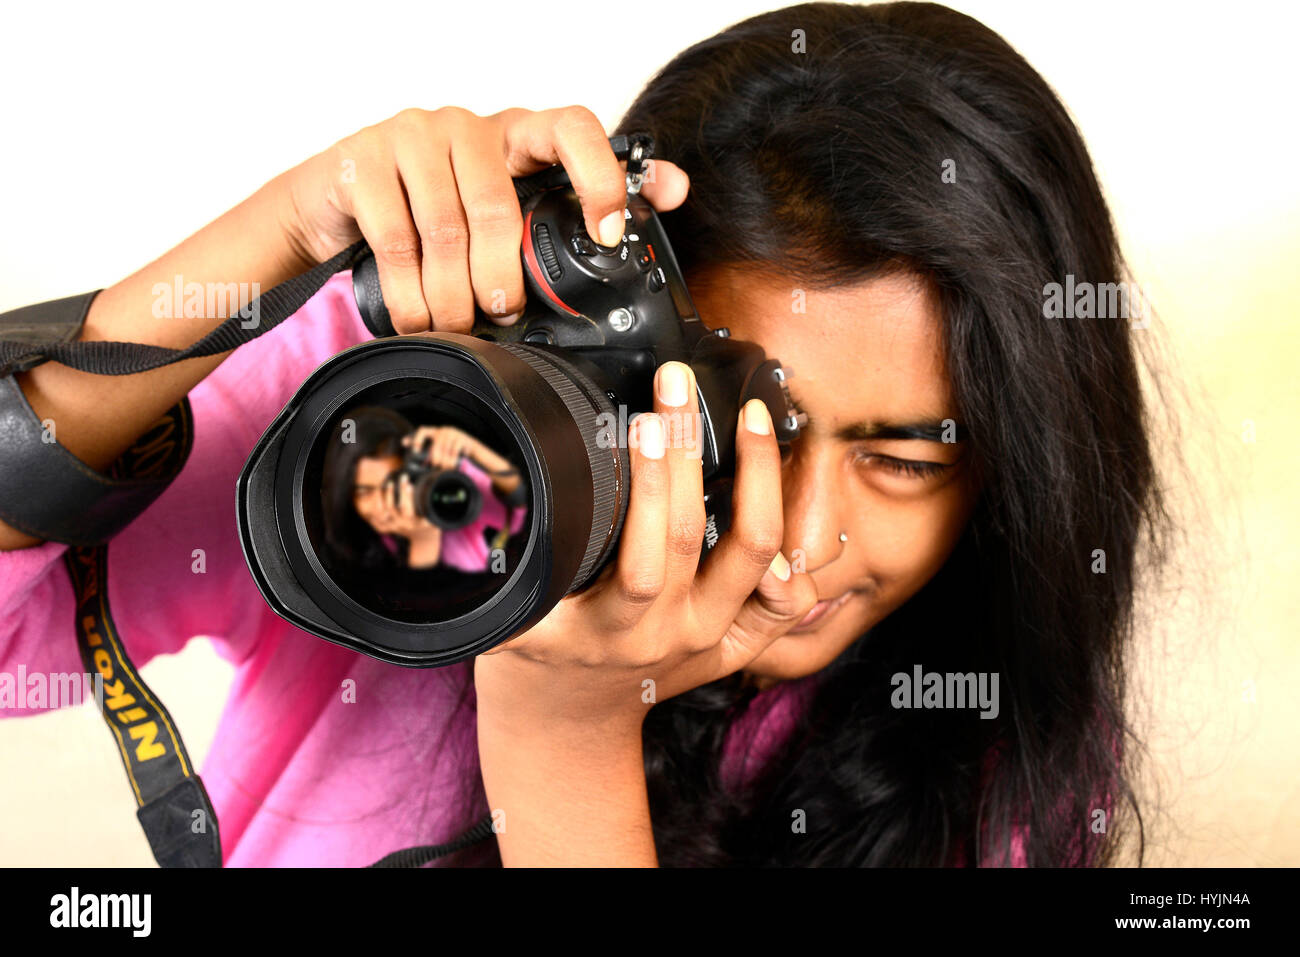 trying-out-a-new-dslr-camera-HYJN4A.jpg